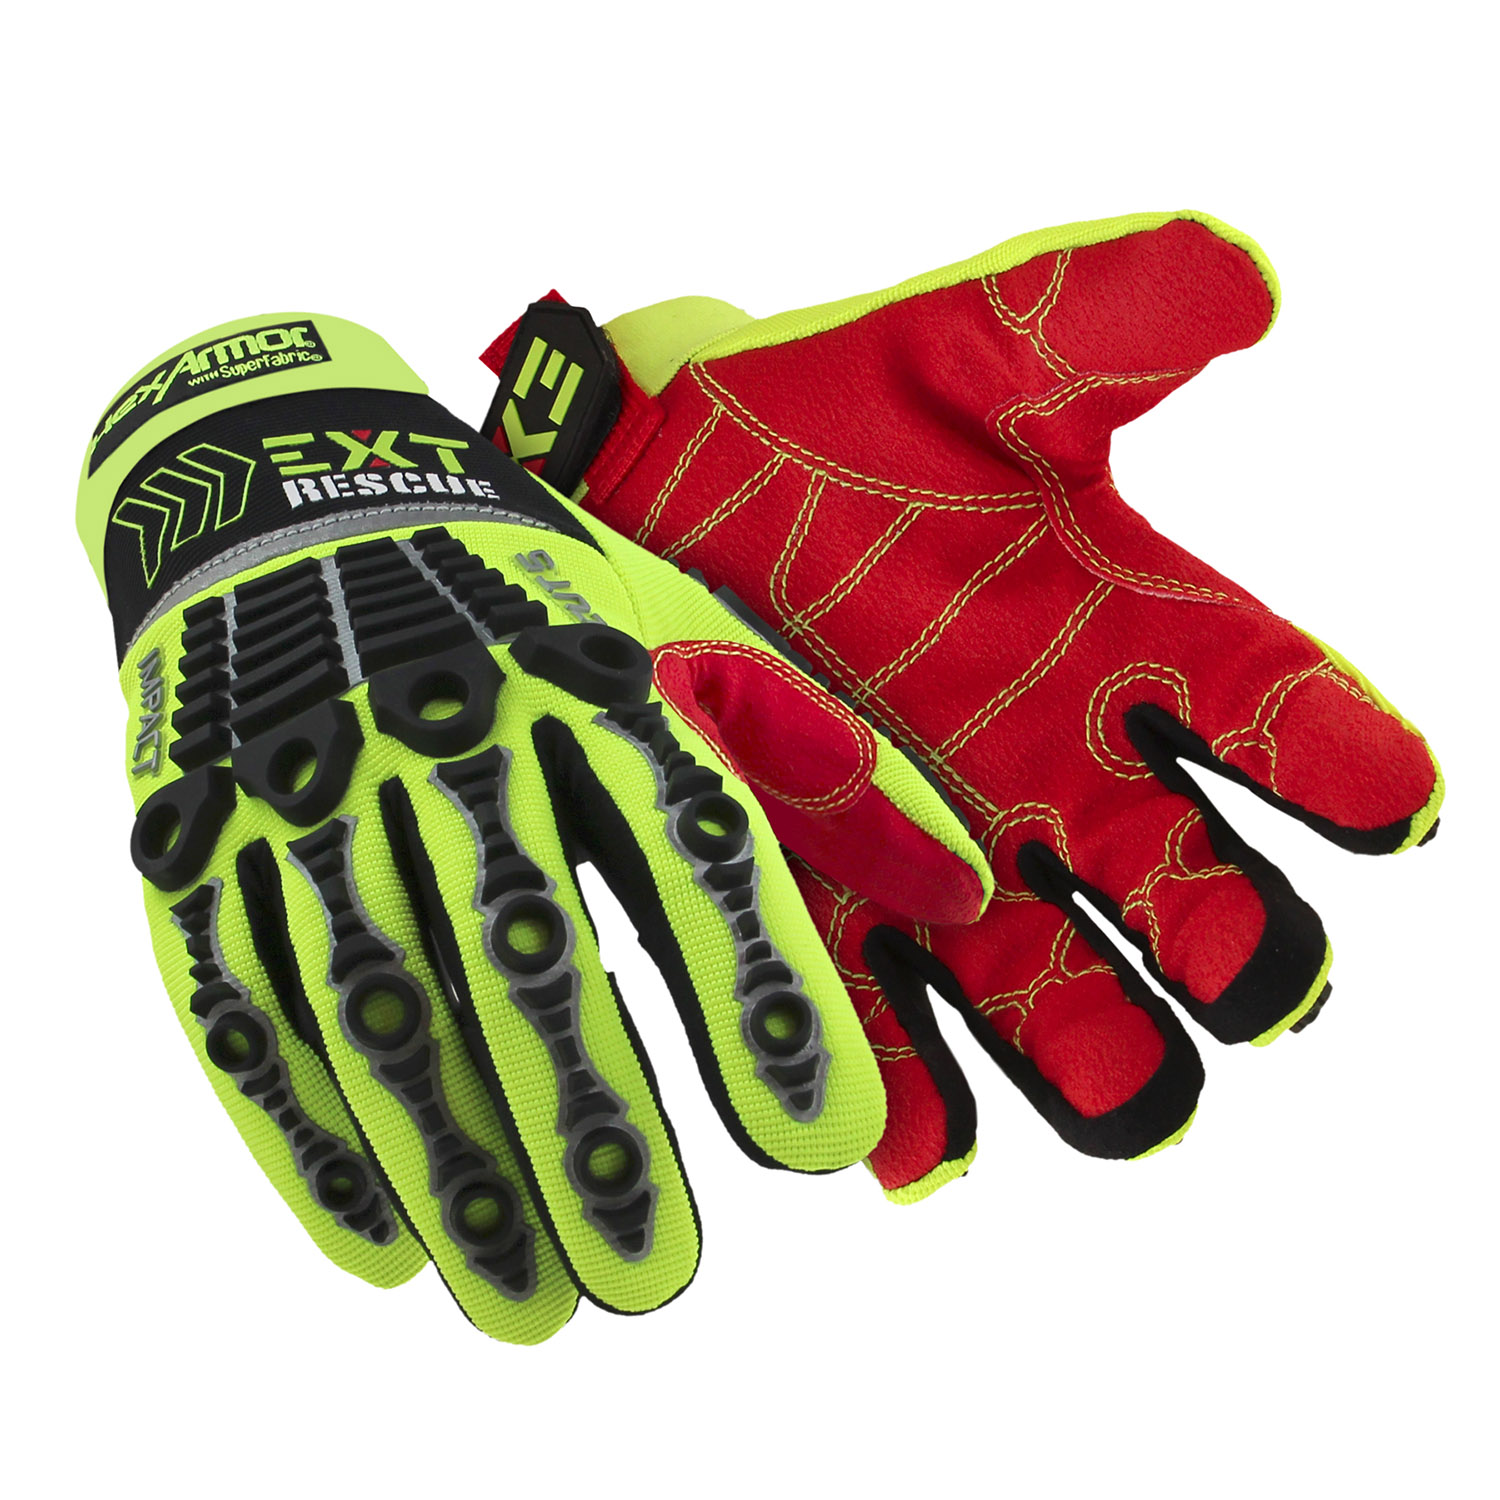 HexArmor EXT Rescue Line 4012 Gloves